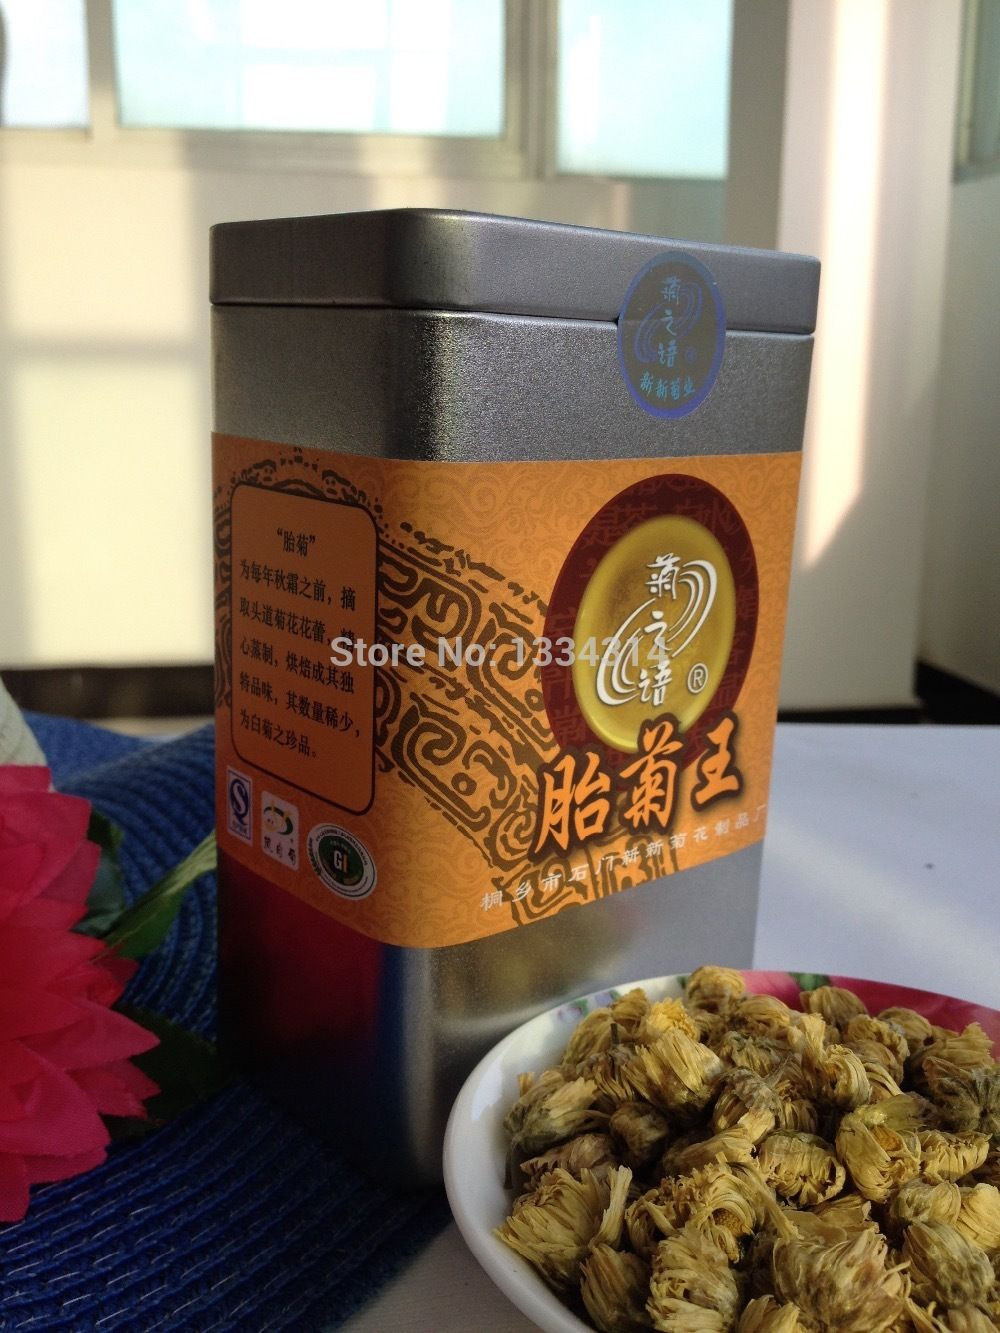 Aliexpress Com Buy Top Grade First Lot Picked Small Bag Packed 10 Small Bags X 6g Bag 60g Can Superfine Tender Chrysanthemum Flower Flower Bud Flower Tea